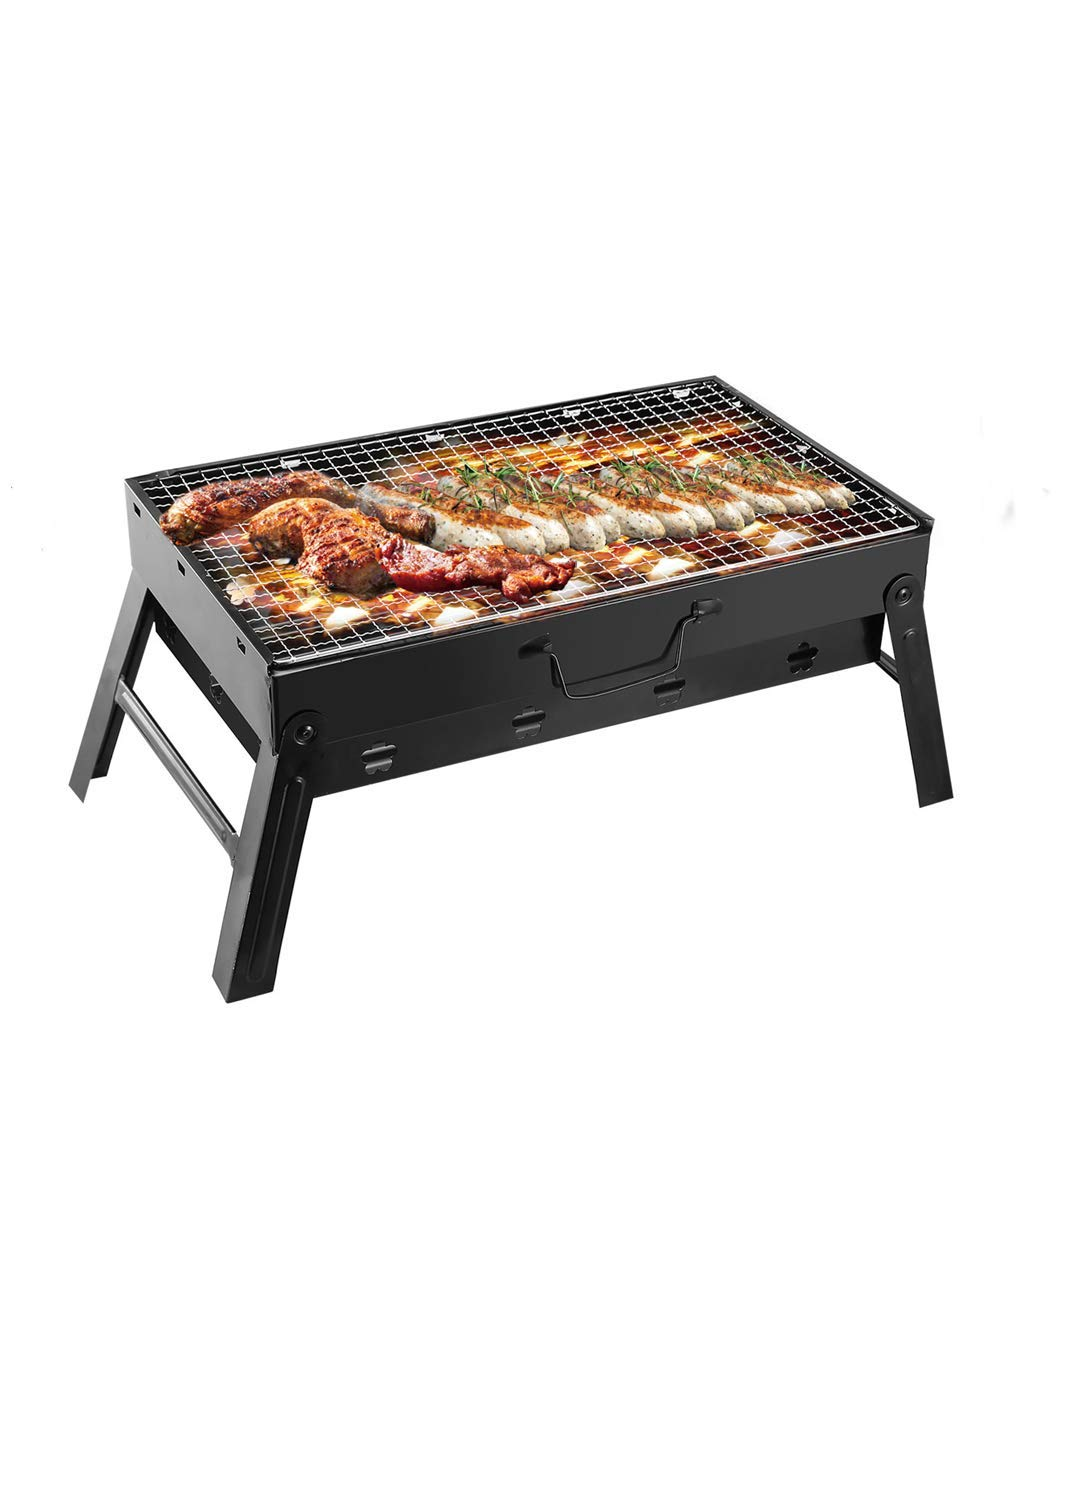 TeqHome Portable Charcoal Grill, Foldable Barbecue Grill Small BBQ Grill for Outdoor, Backyard, Camping, 17 x 10 x 11 inch